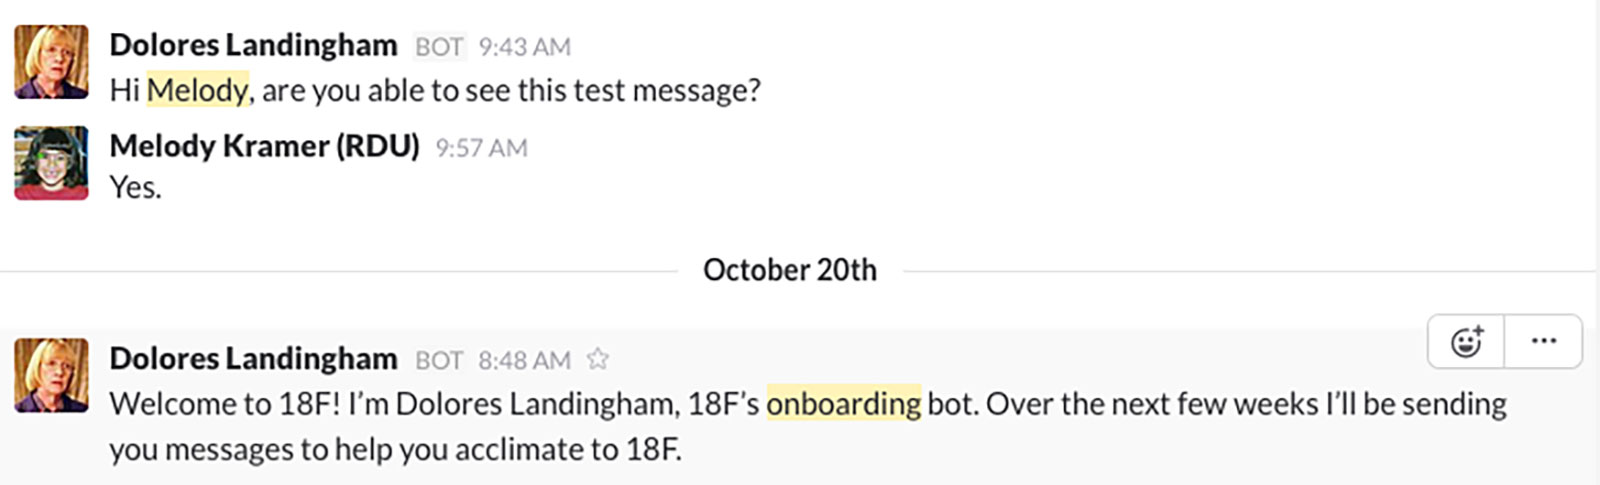 A test conversation with Mrs. Dolores Landingham, the onboarding chat bot.